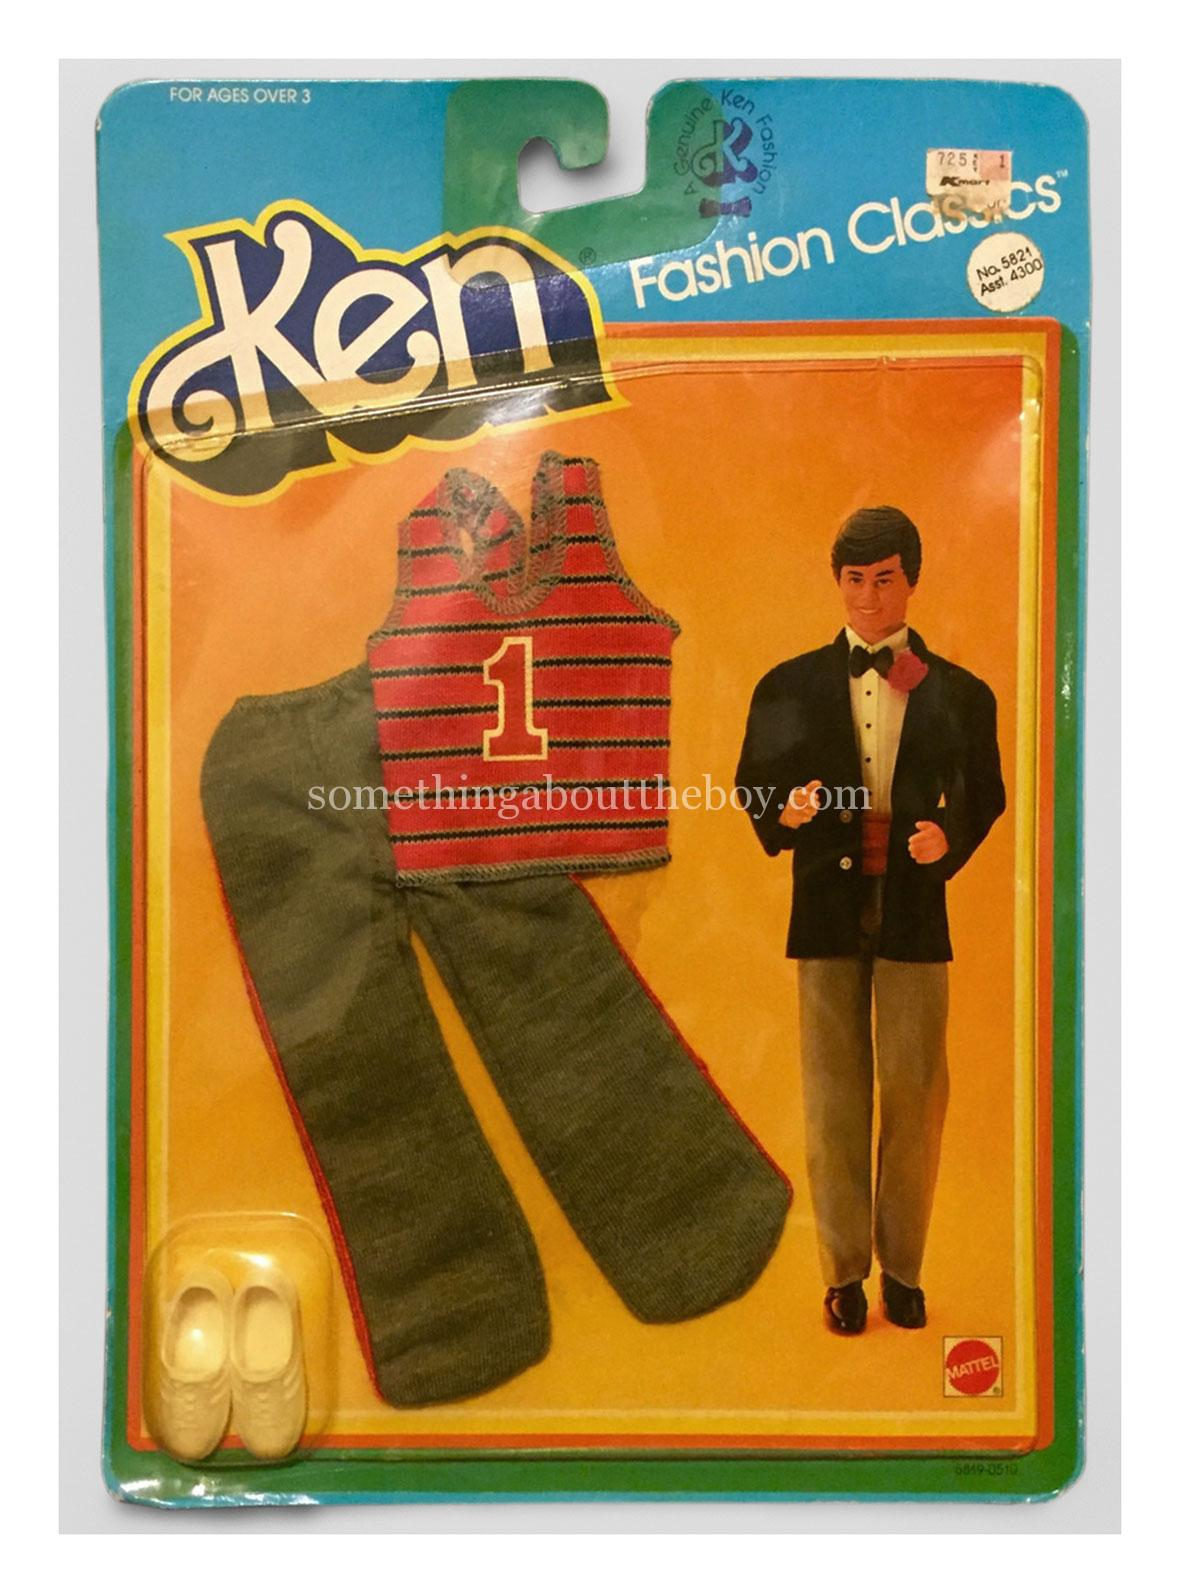 1983-4 Kmart Fashion Classics #5821 in original packaging